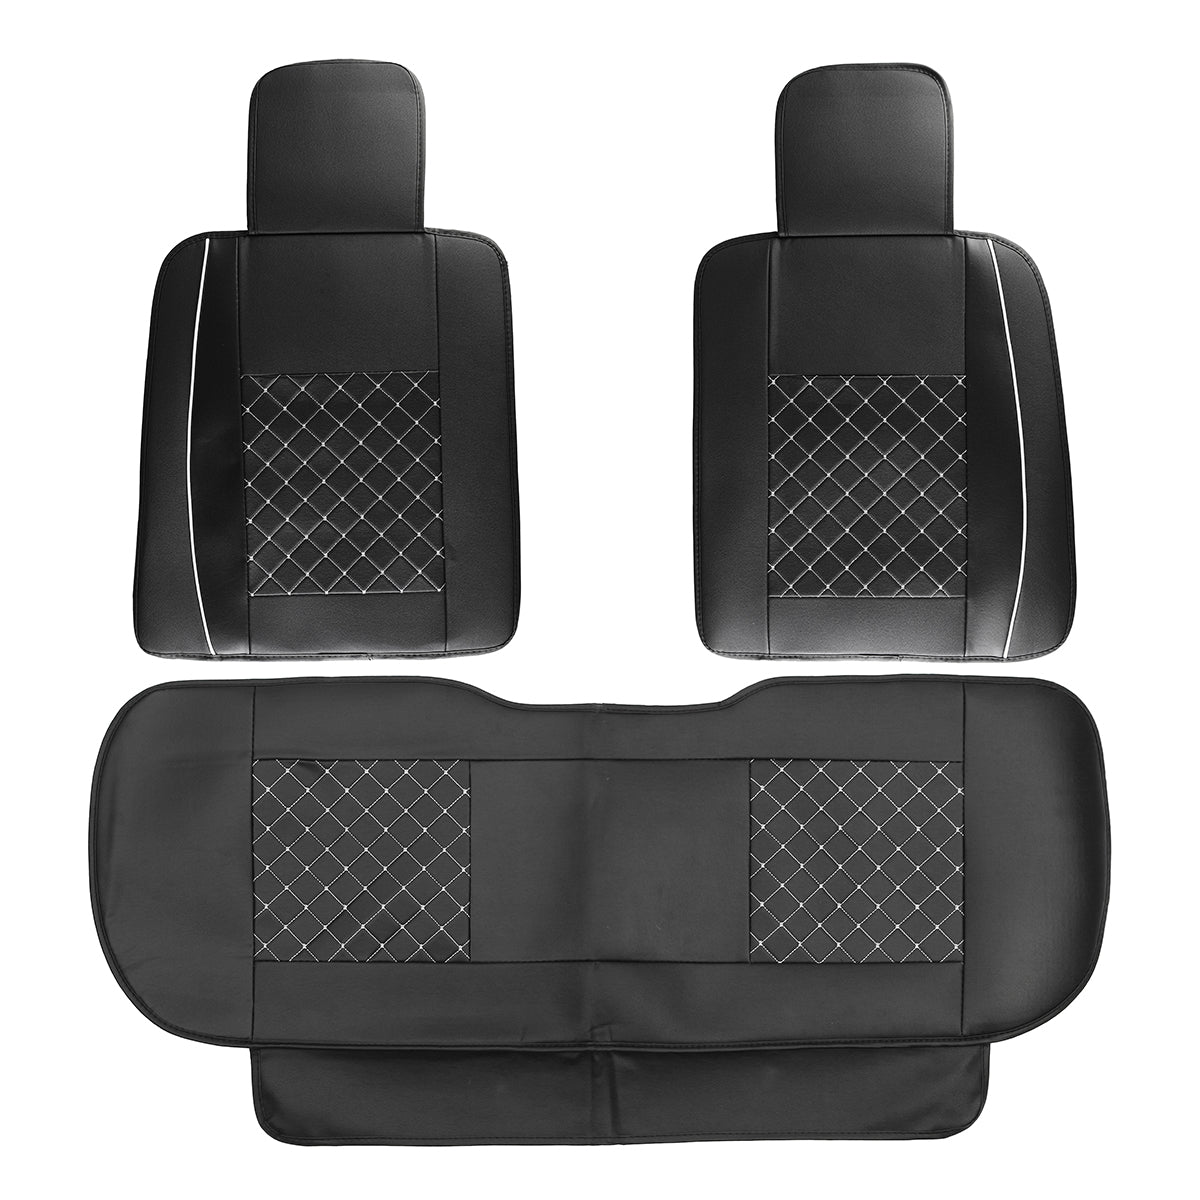 CoverX™ Universal SUV 5-Seat PU Leather Front/Rear Seat Cover